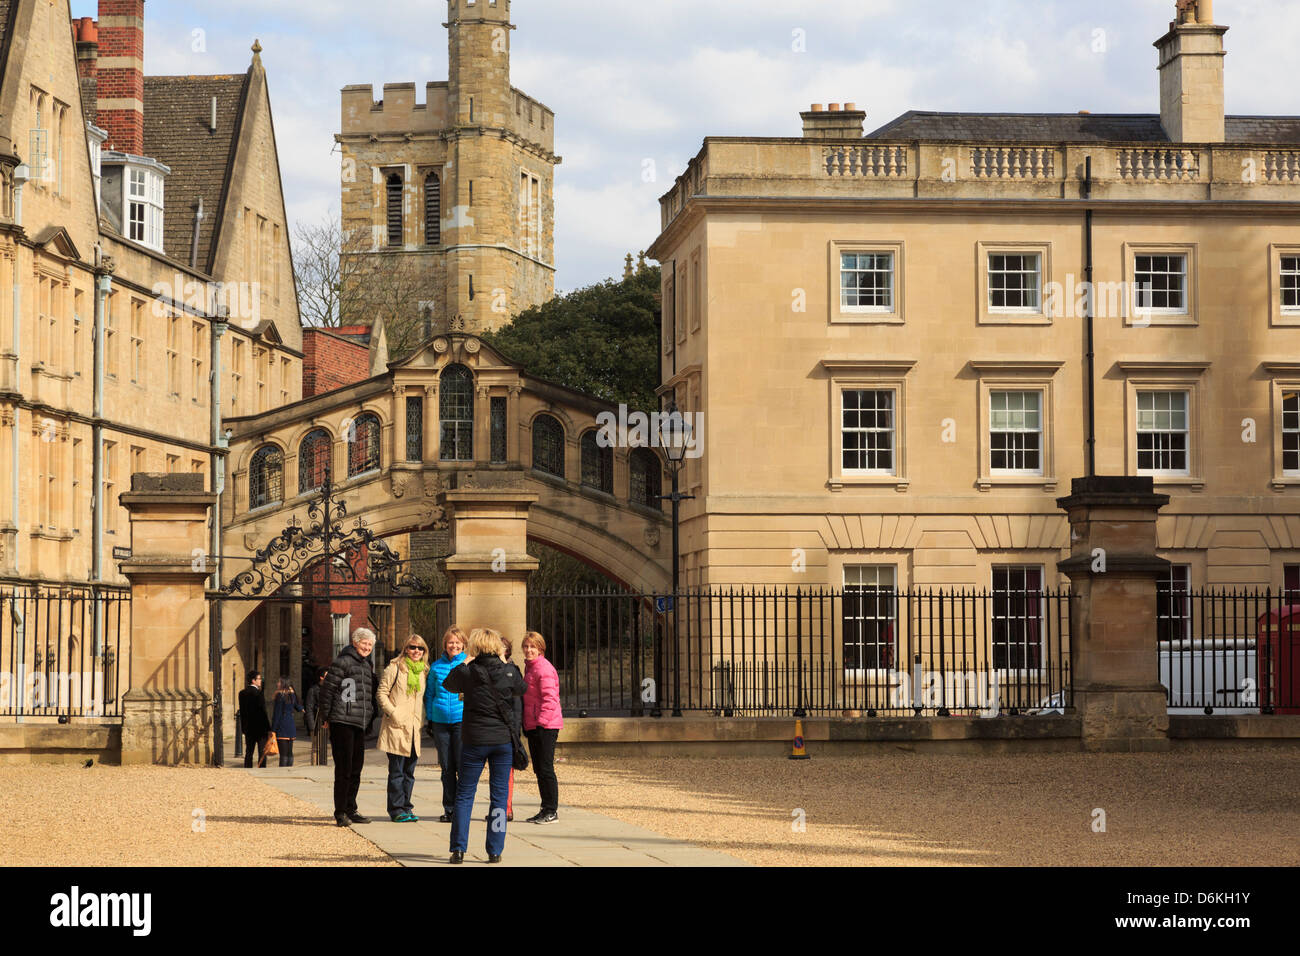 Tourists being photographed in front of the Bridge of Sighs and Hertford College in Oxford England UK Britain - Stock Image